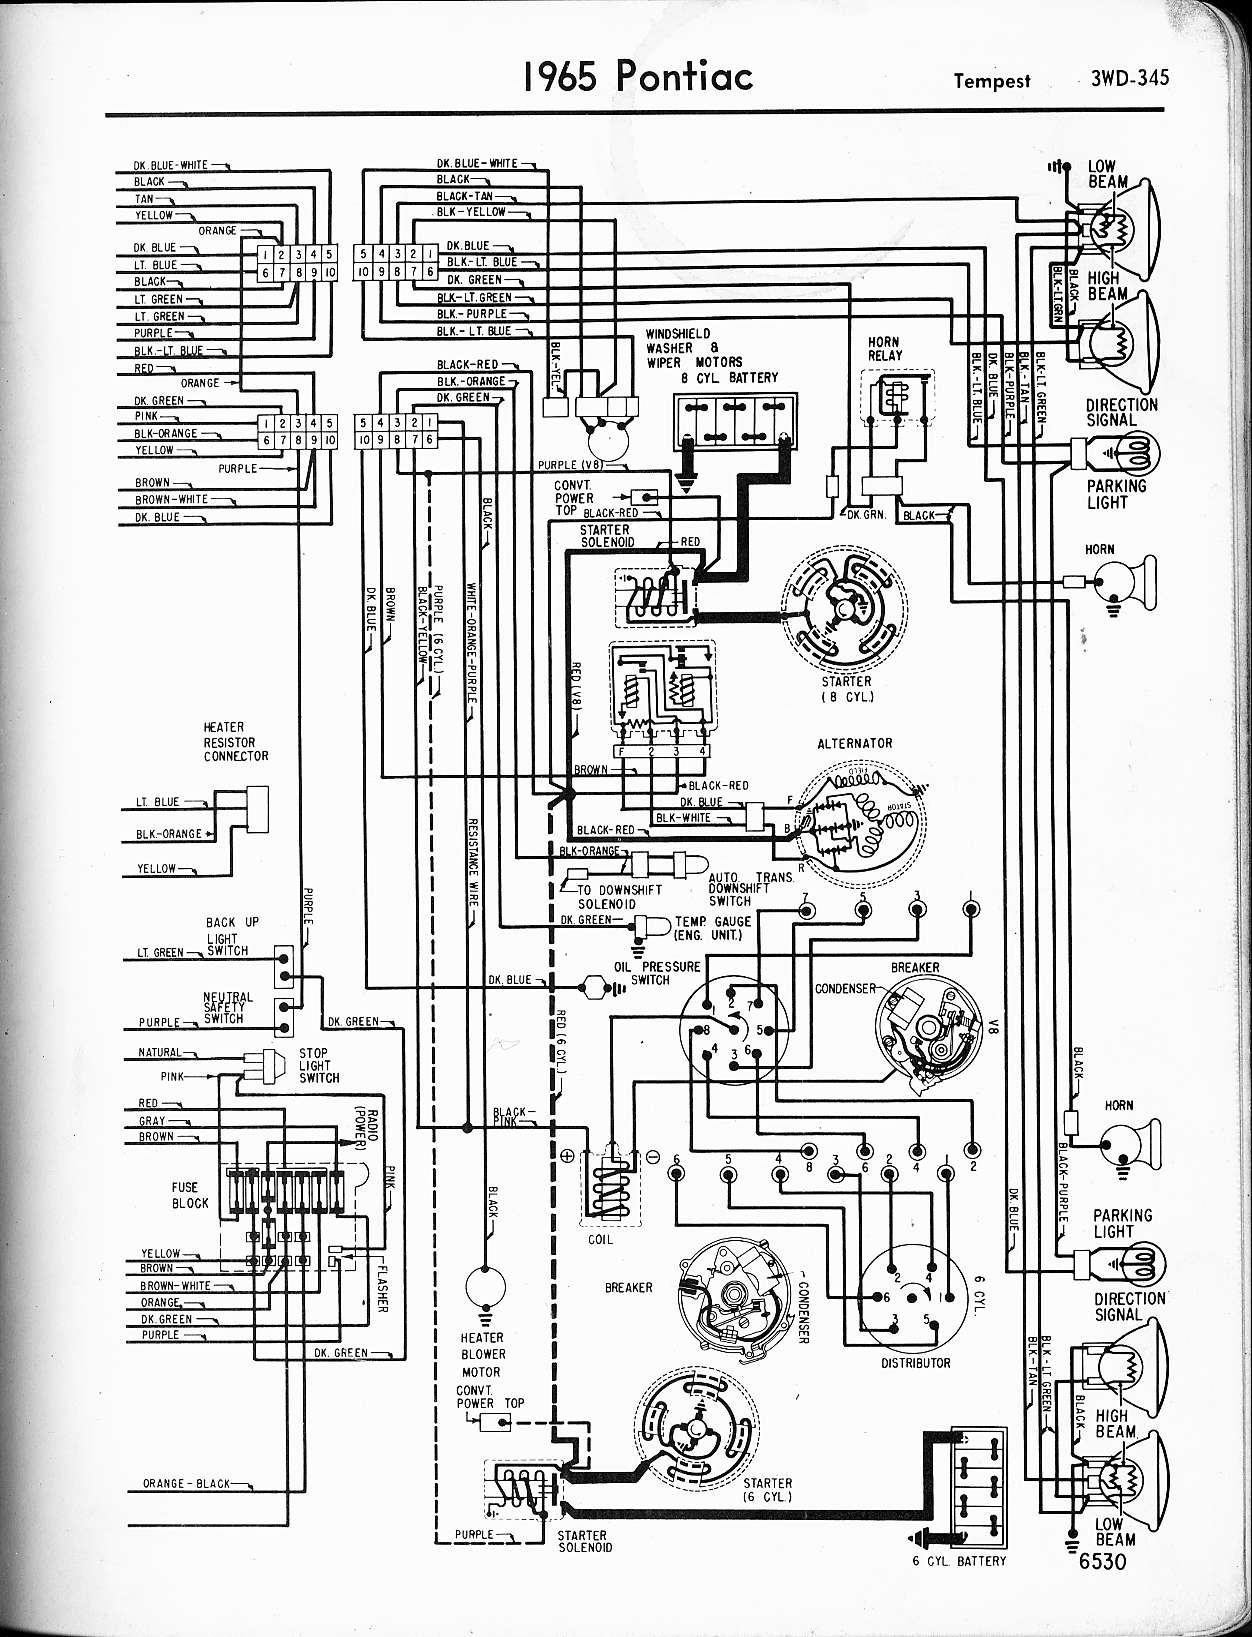 99 pontiac grand prix wiring diagram 1970 grand prix wiring diagram